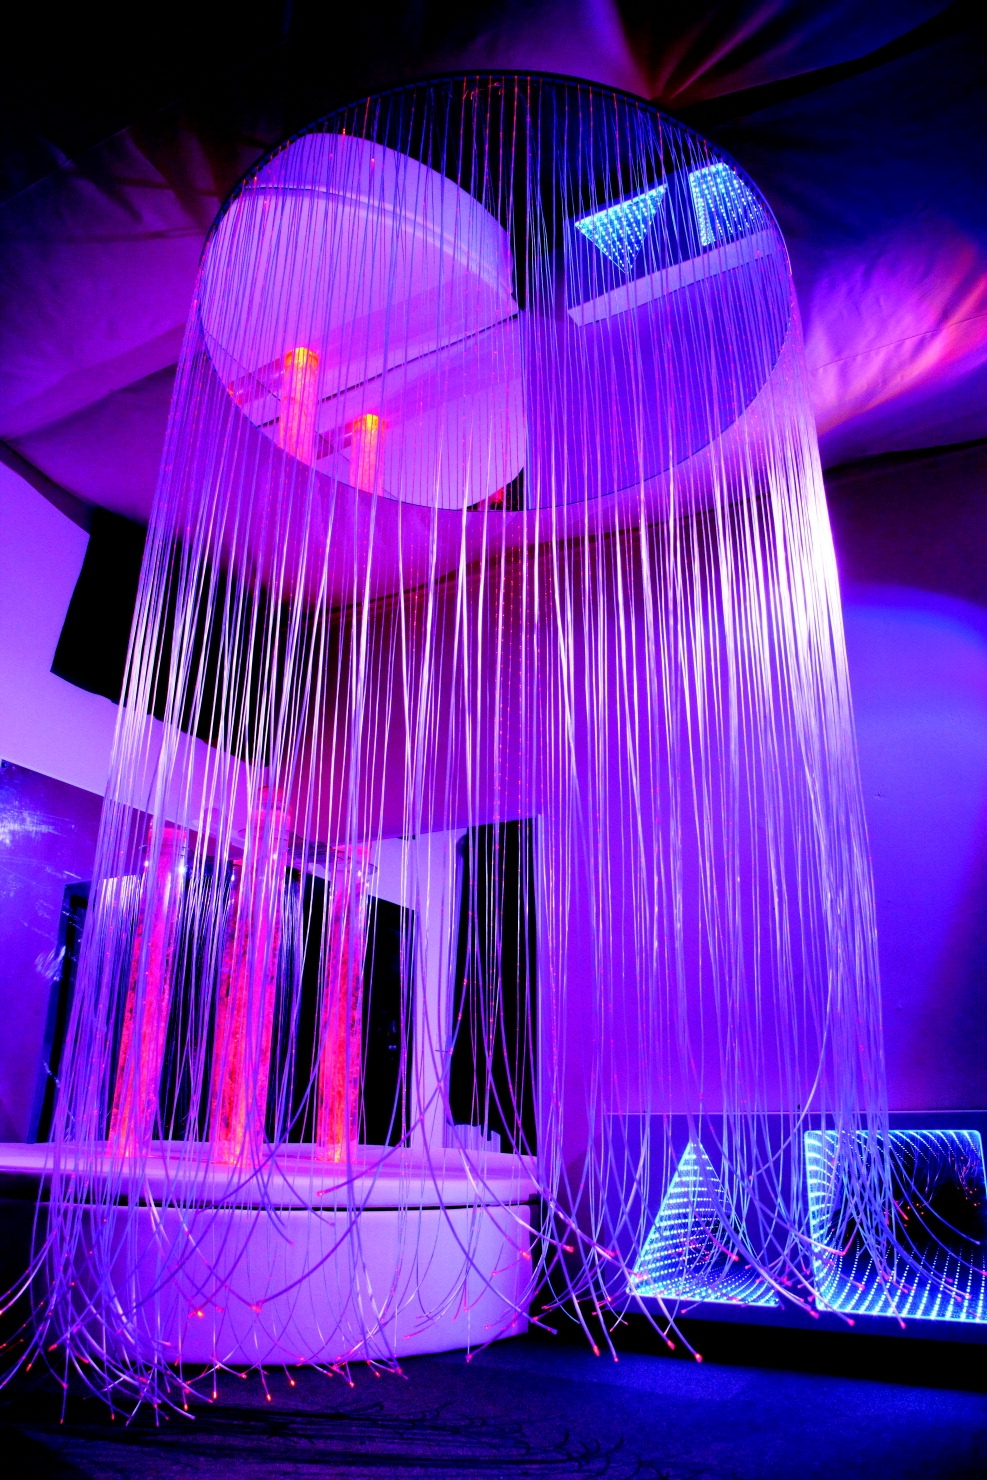 School Specialty Circular Led Fiber Optic Calming Shower With Wireless Controller-6 Foot Strands - 1397563 - Special Populations Children Special Needs Gaint Leap Visual Snoezelen Fiber Optics And Interactive Panels 1397563